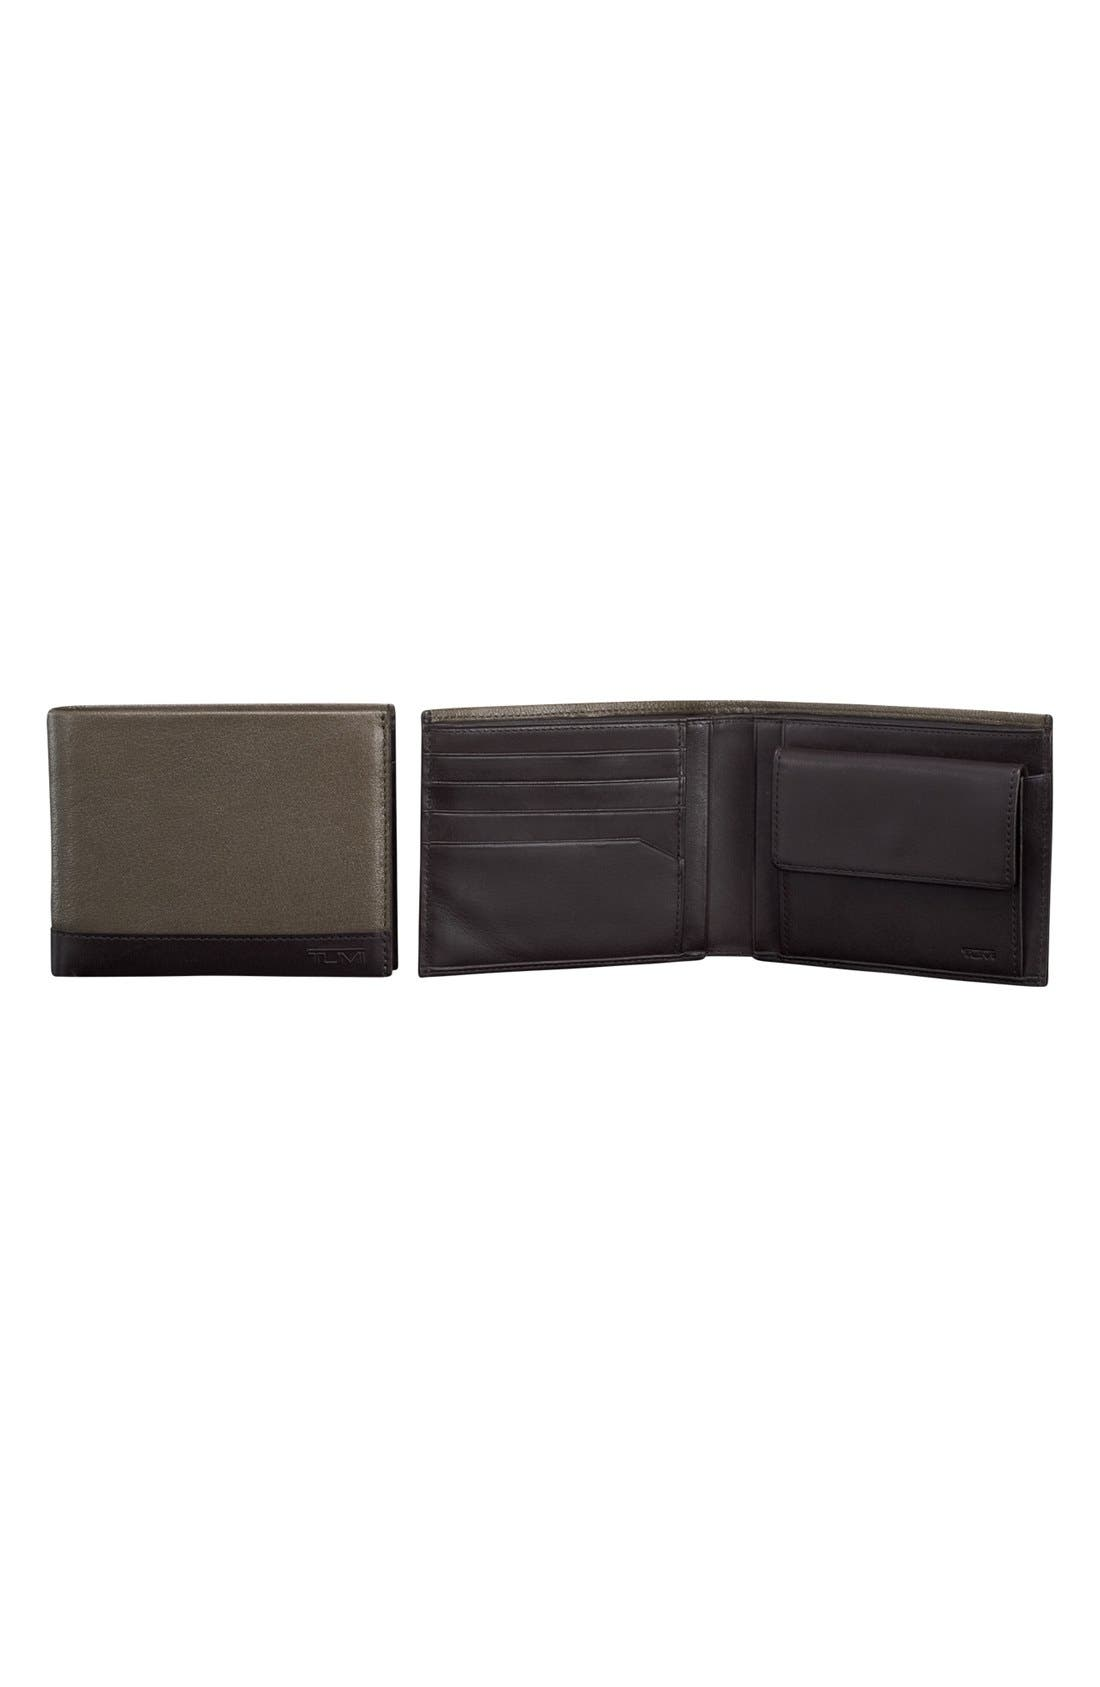 Alternate Image 1 Selected - Tumi 'Rivington Global' Leather Coin Wallet